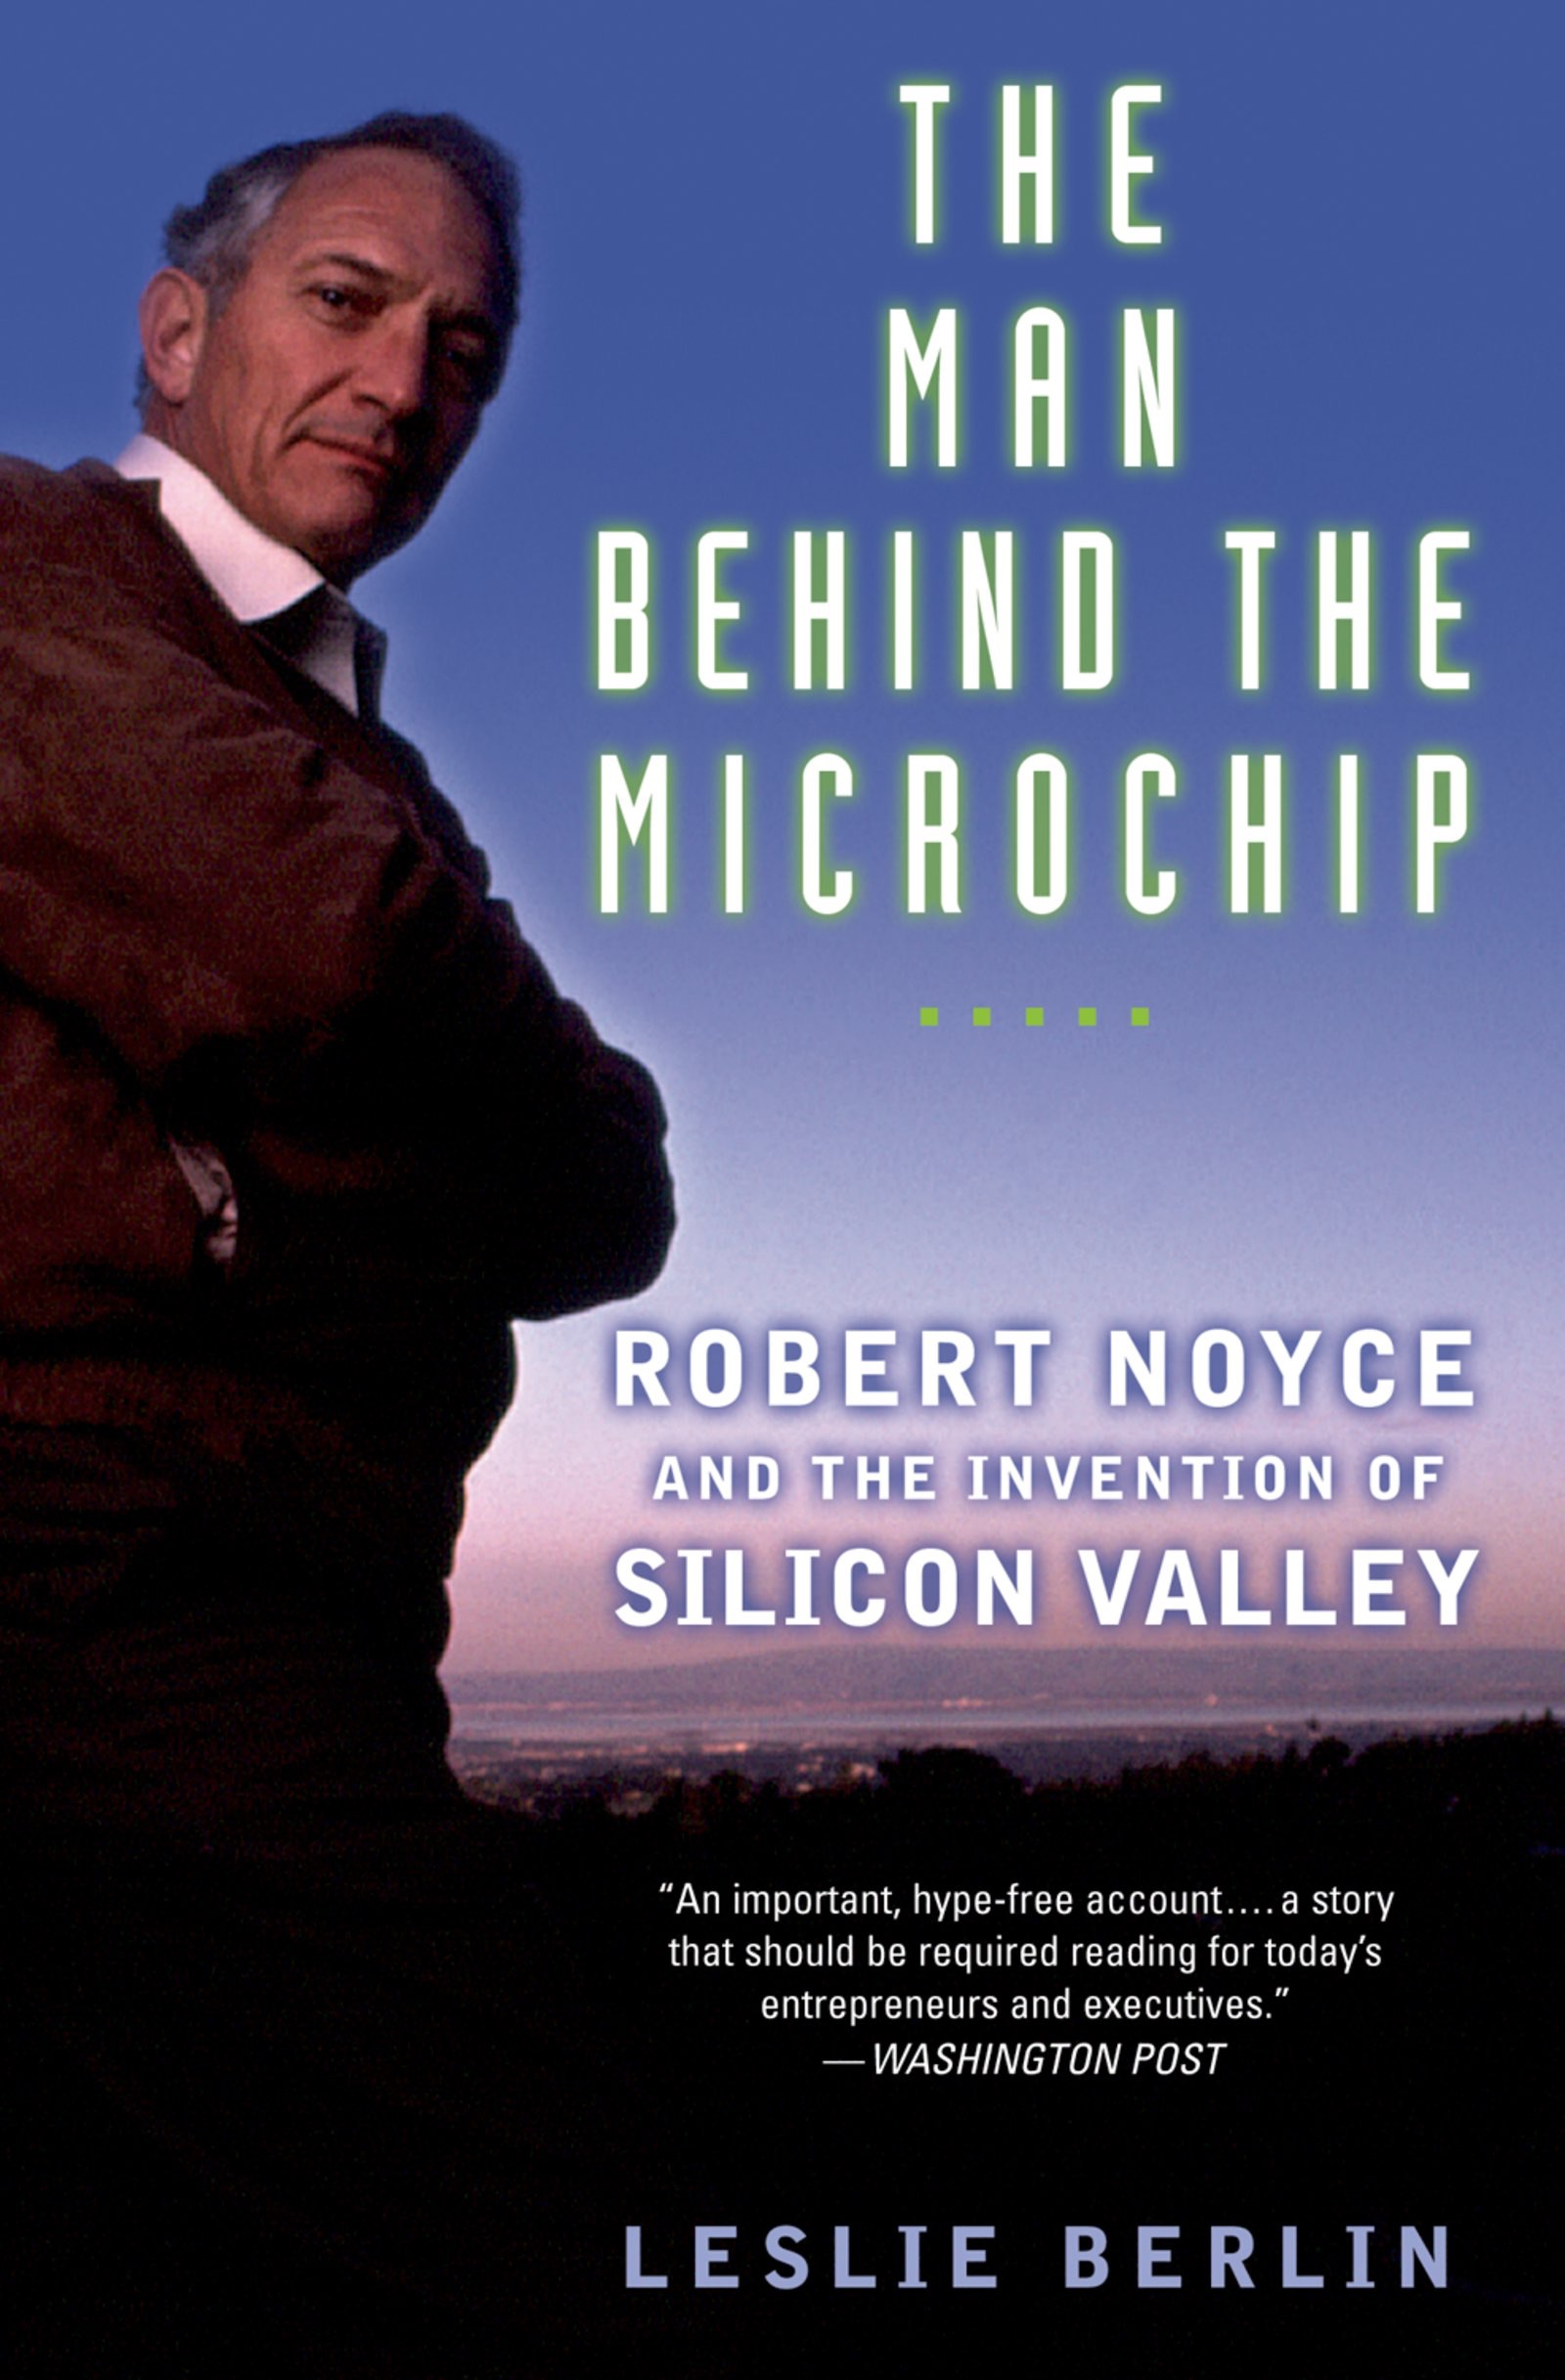 Book Cover of The Man Behind the Microchip